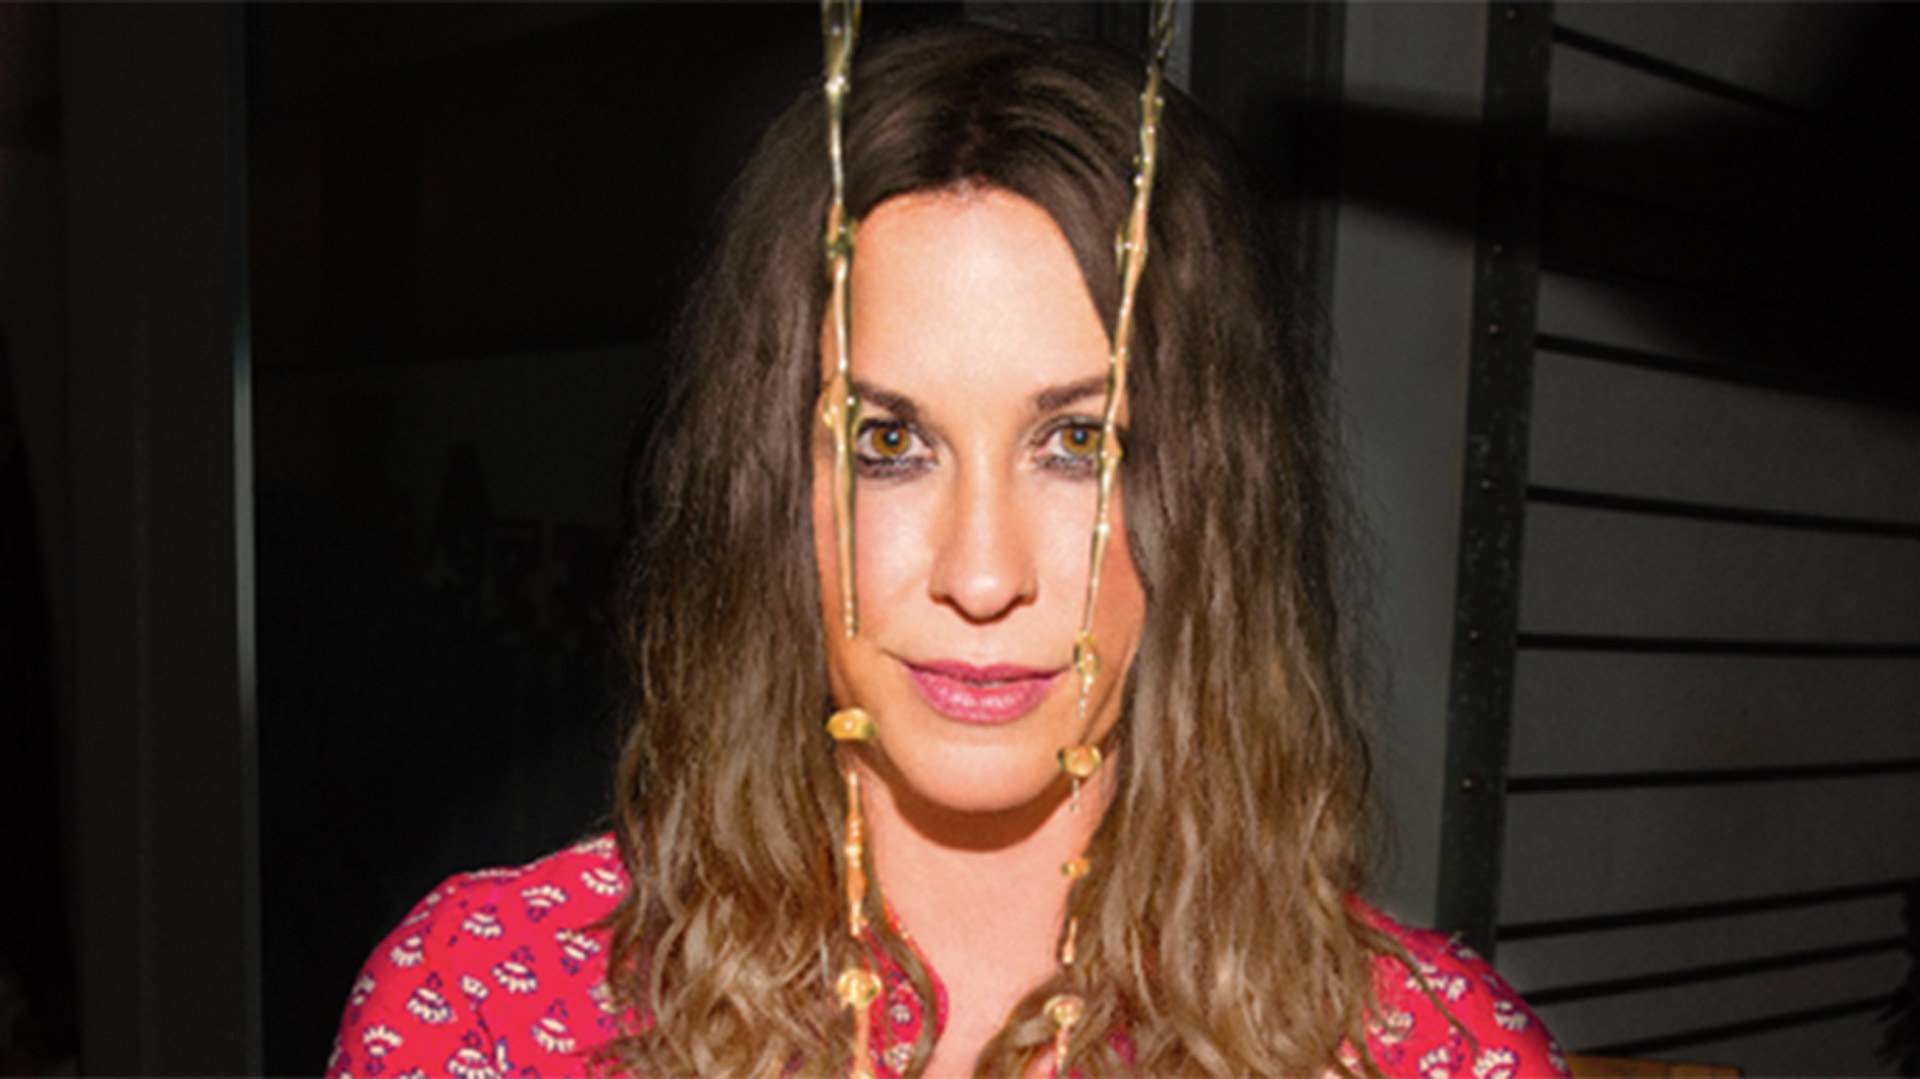 Alanis Morissette Is Bringing Her 'Jagged Little Pill' 25th Anniversary Tour to Australia